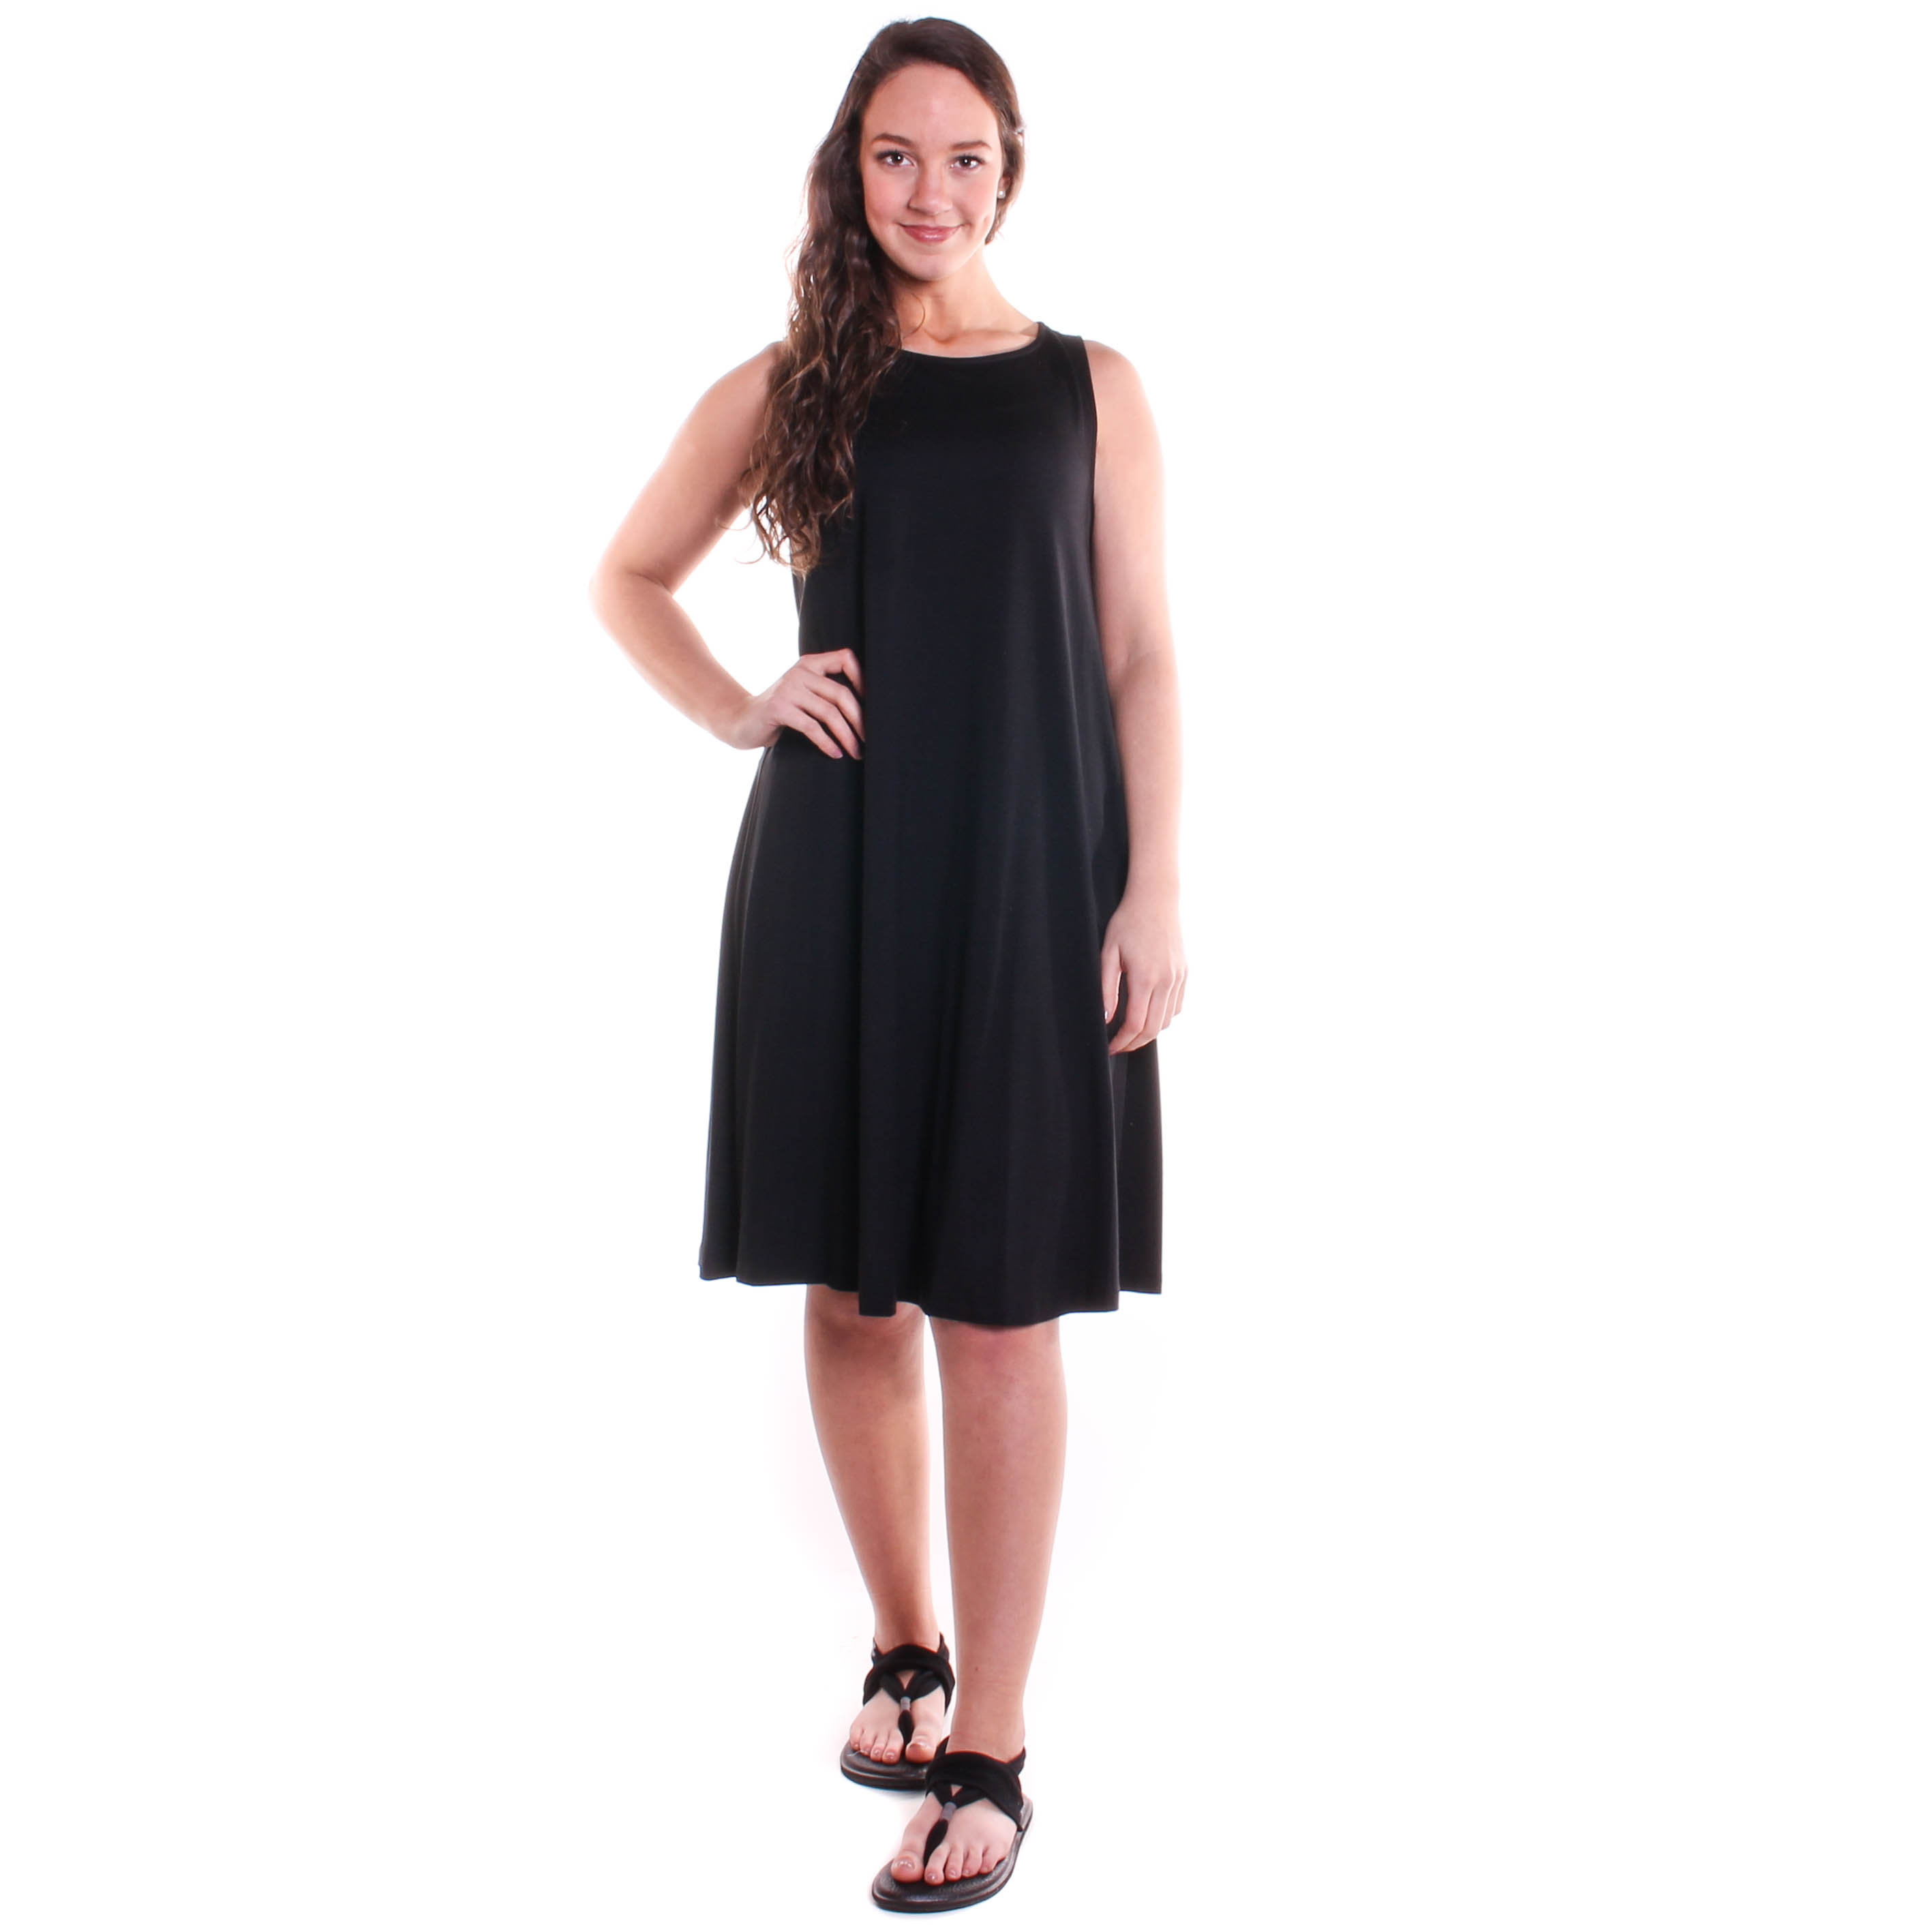 318c22aba446 Price search results for Comfy USA Womens Gigi Dress